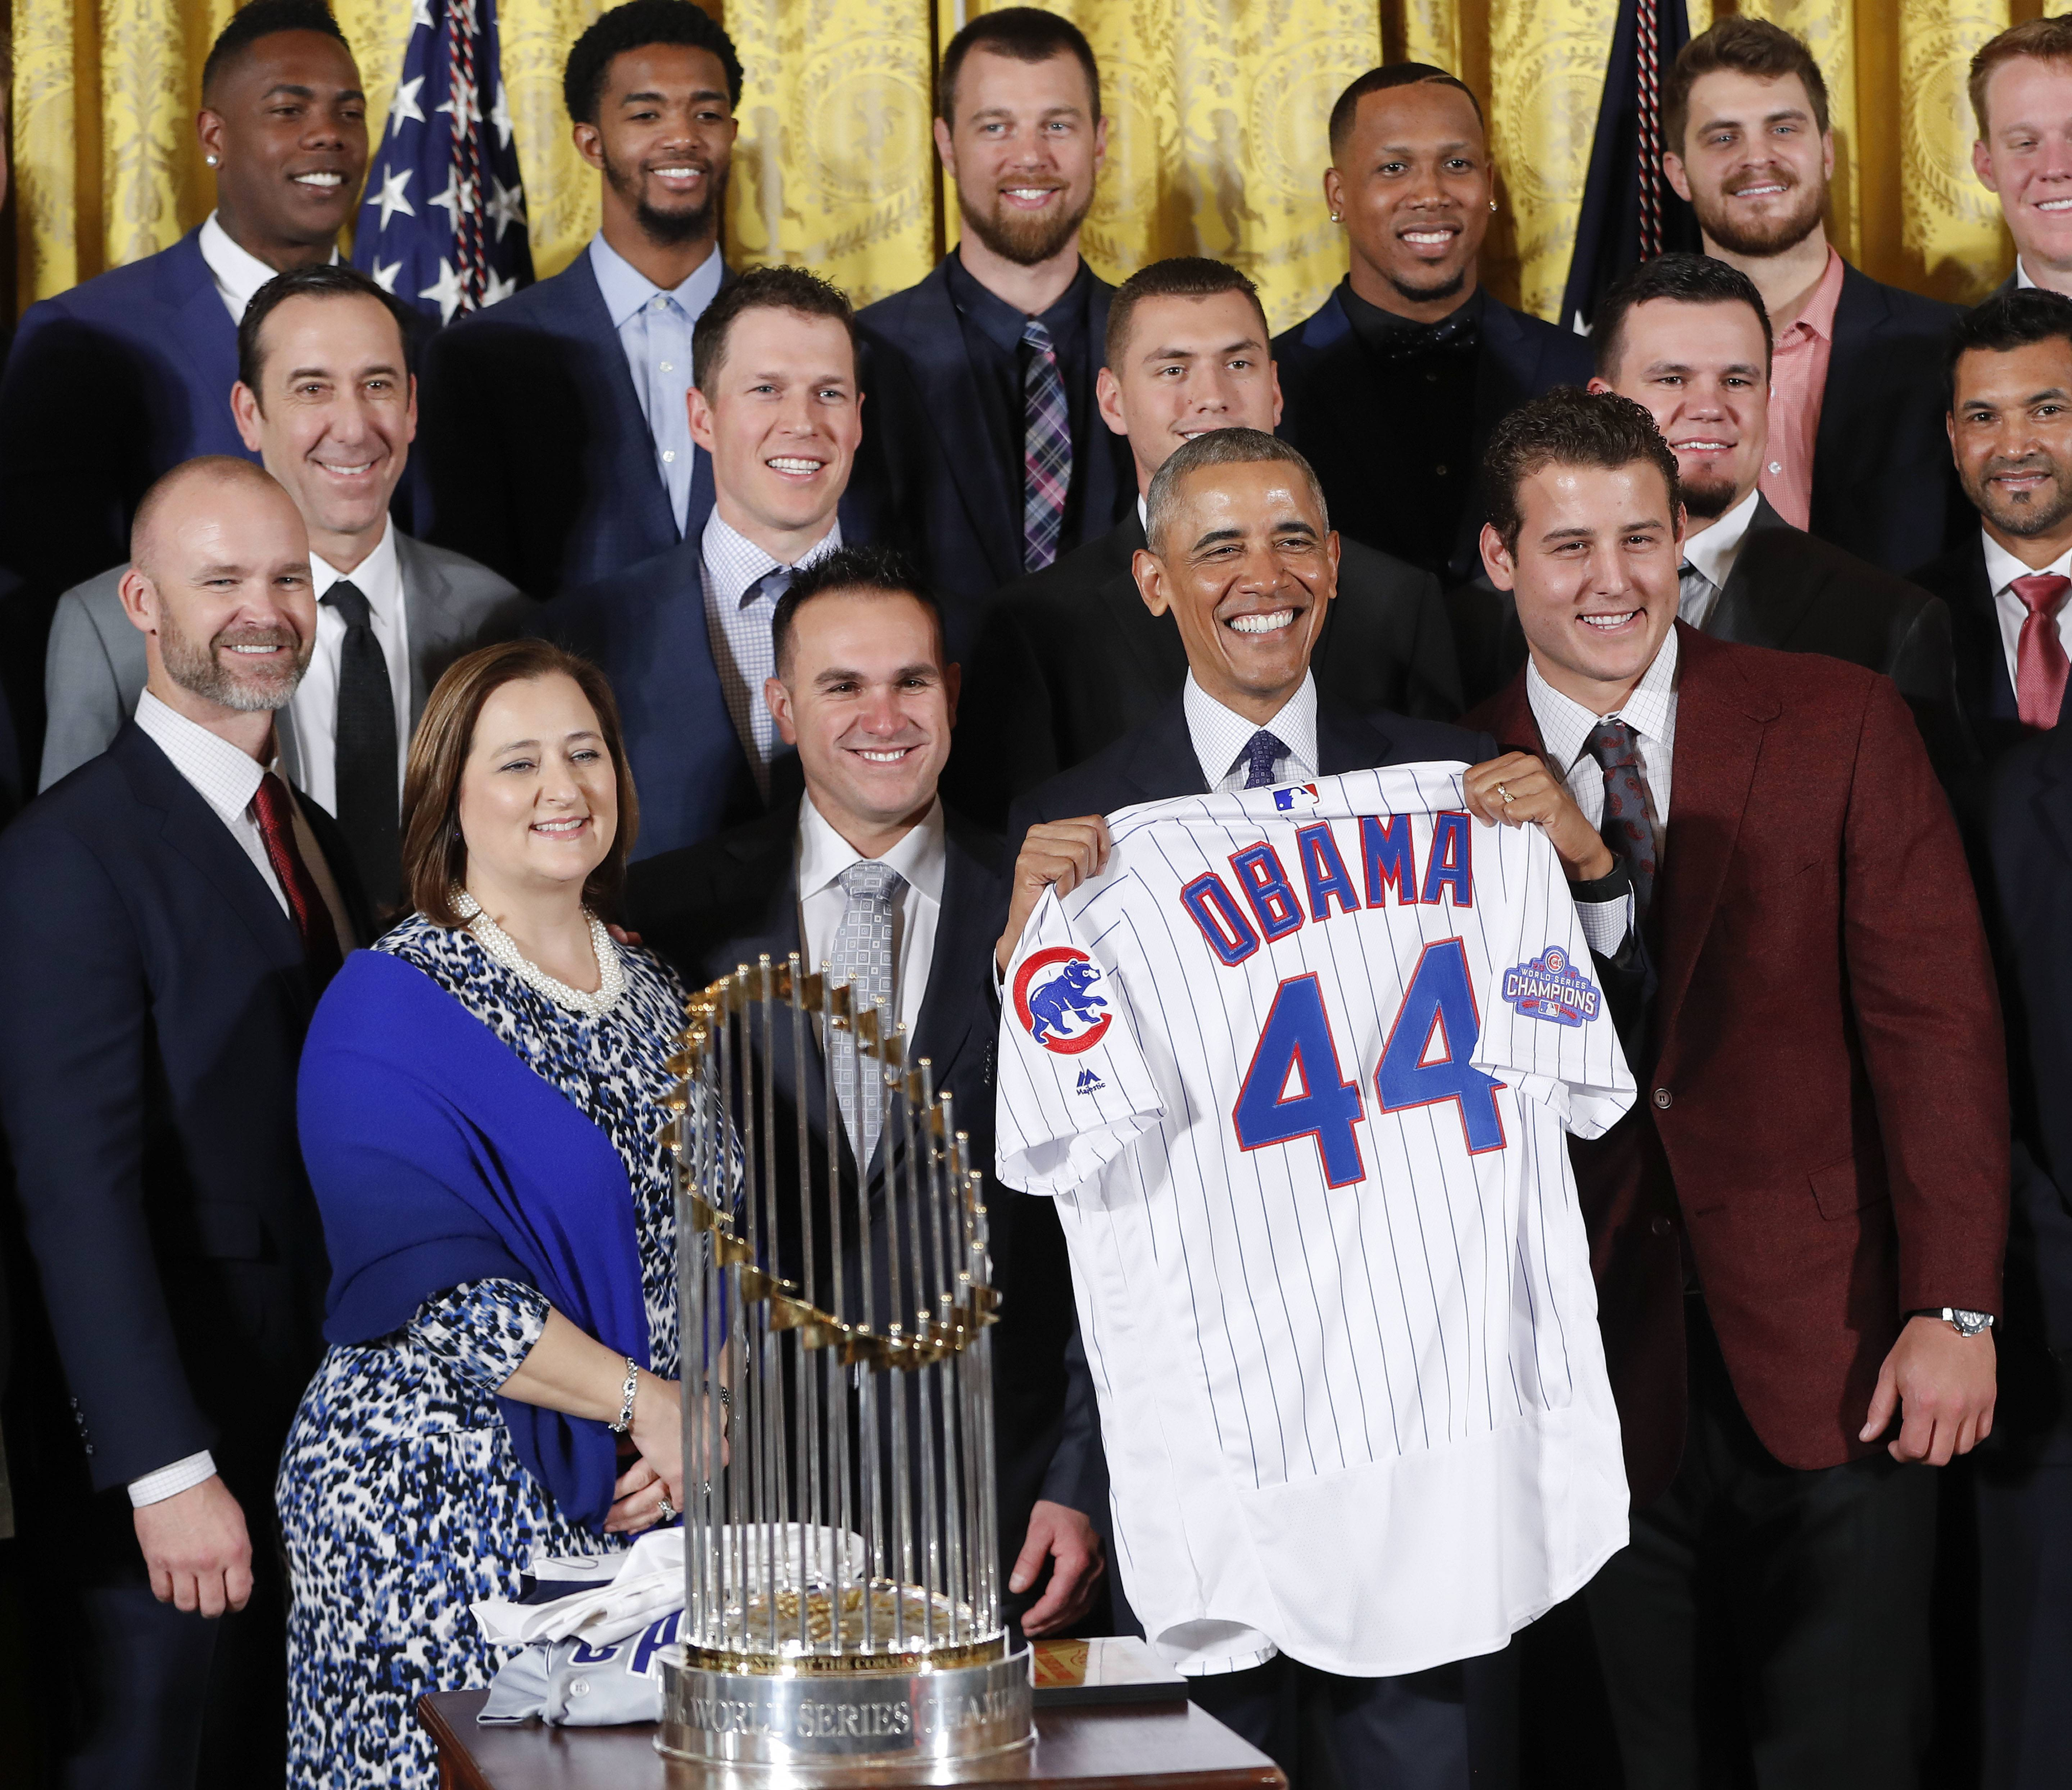 Constable: After slow start in race relations, Cubs are catching up